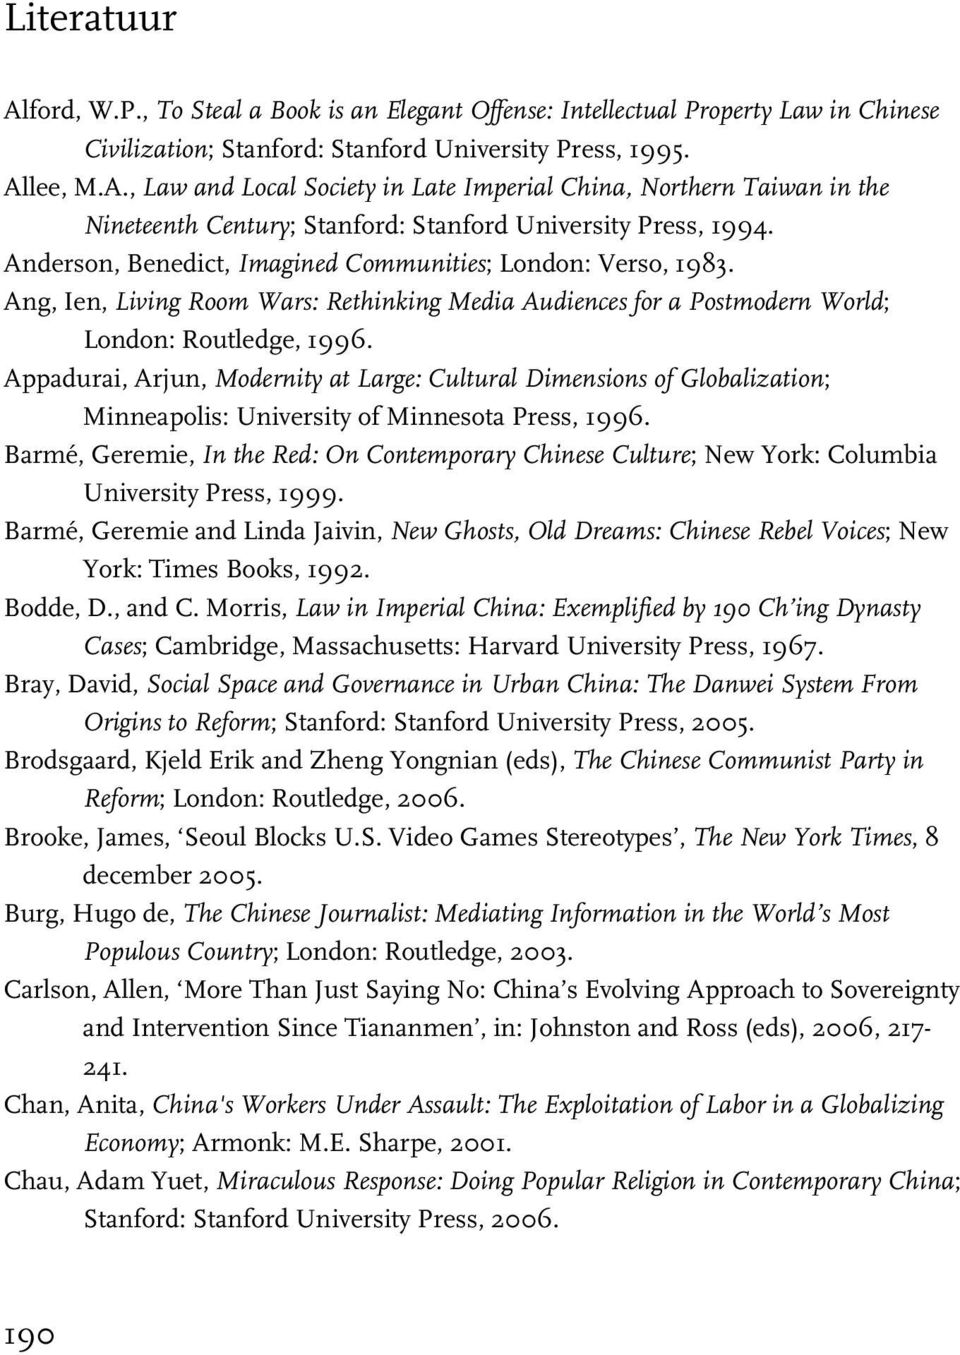 Appadurai, Arjun, Modernity at Large: Cultural Dimensions of Globalization; Minneapolis: University of Minnesota Press, 1996.